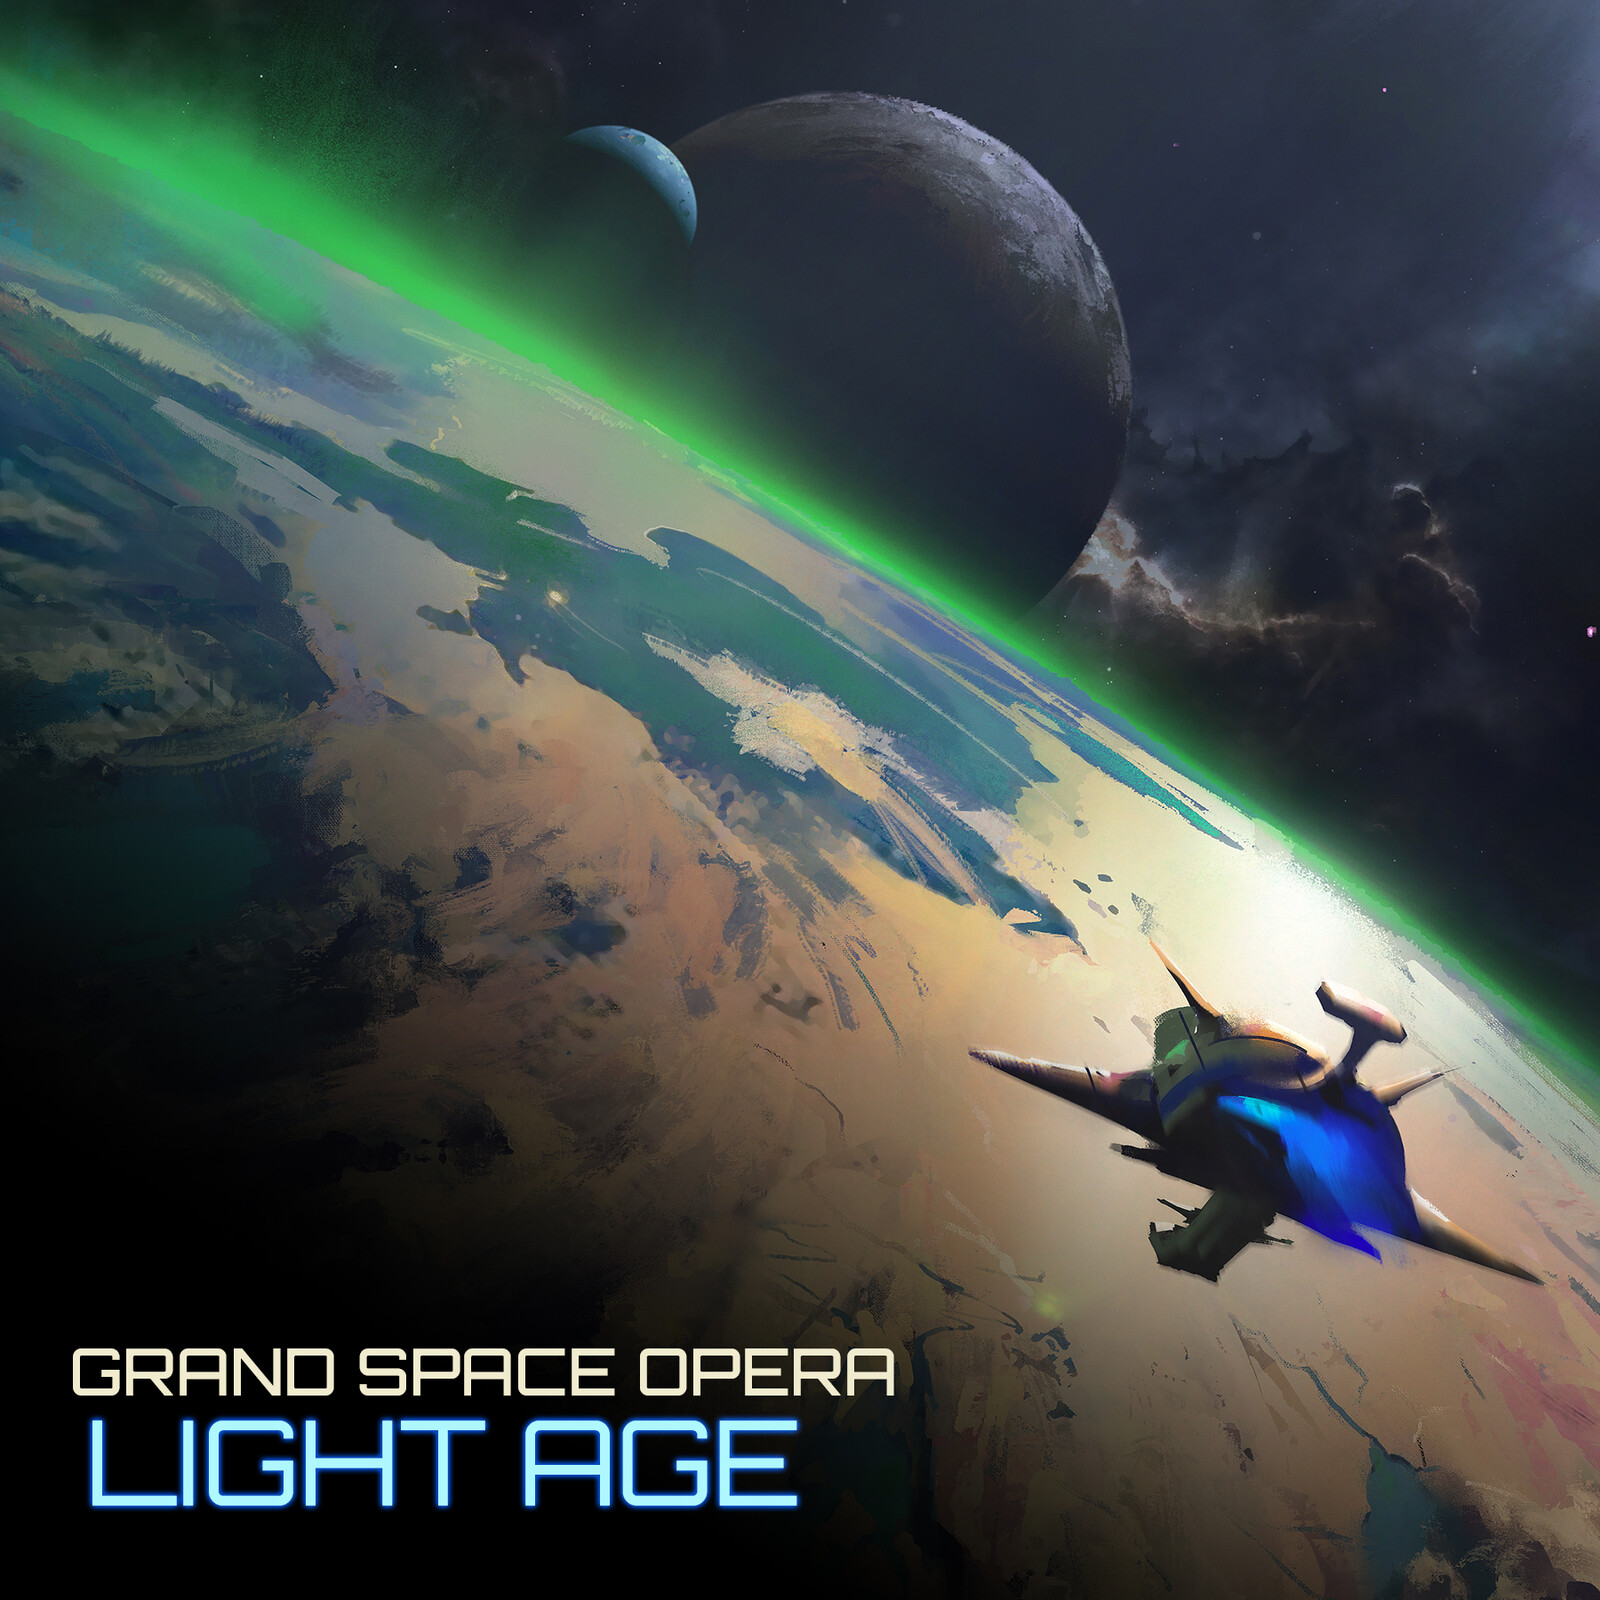 Grand Space Opera: Light Age - Keyframe Design